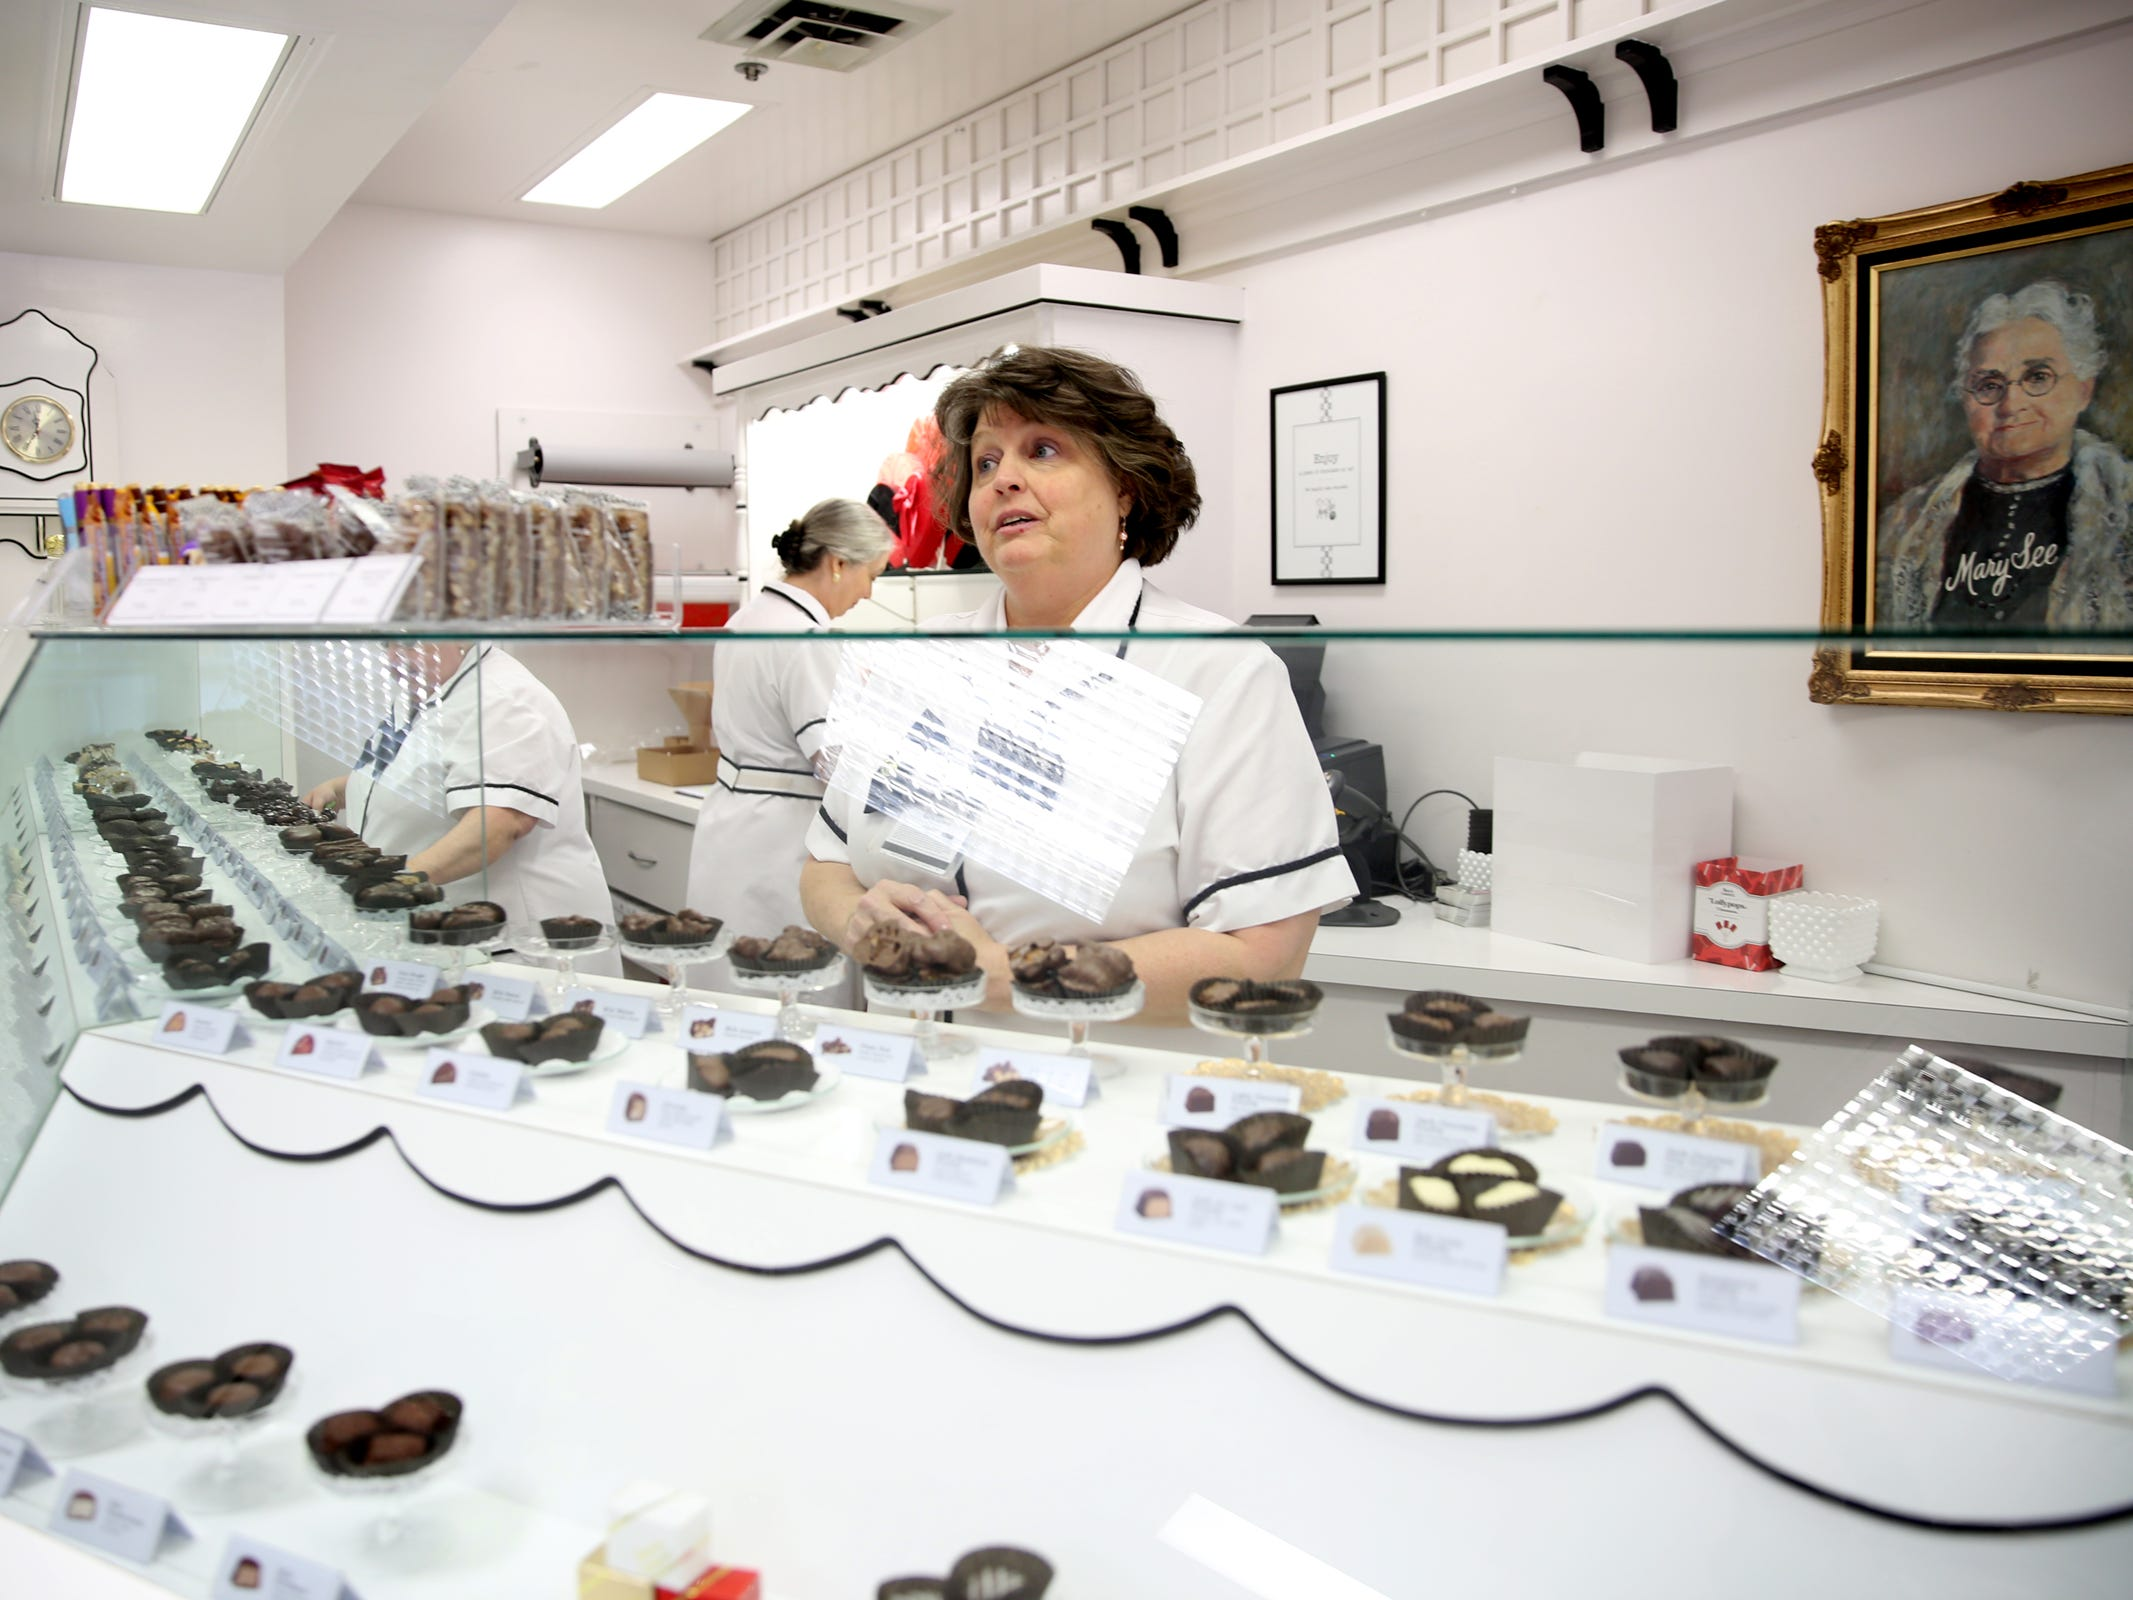 Kelly Winkle, a sales associate, helps a customer at See's Candies in downtown Salem on Tuesday, Feb. 5, 2019.